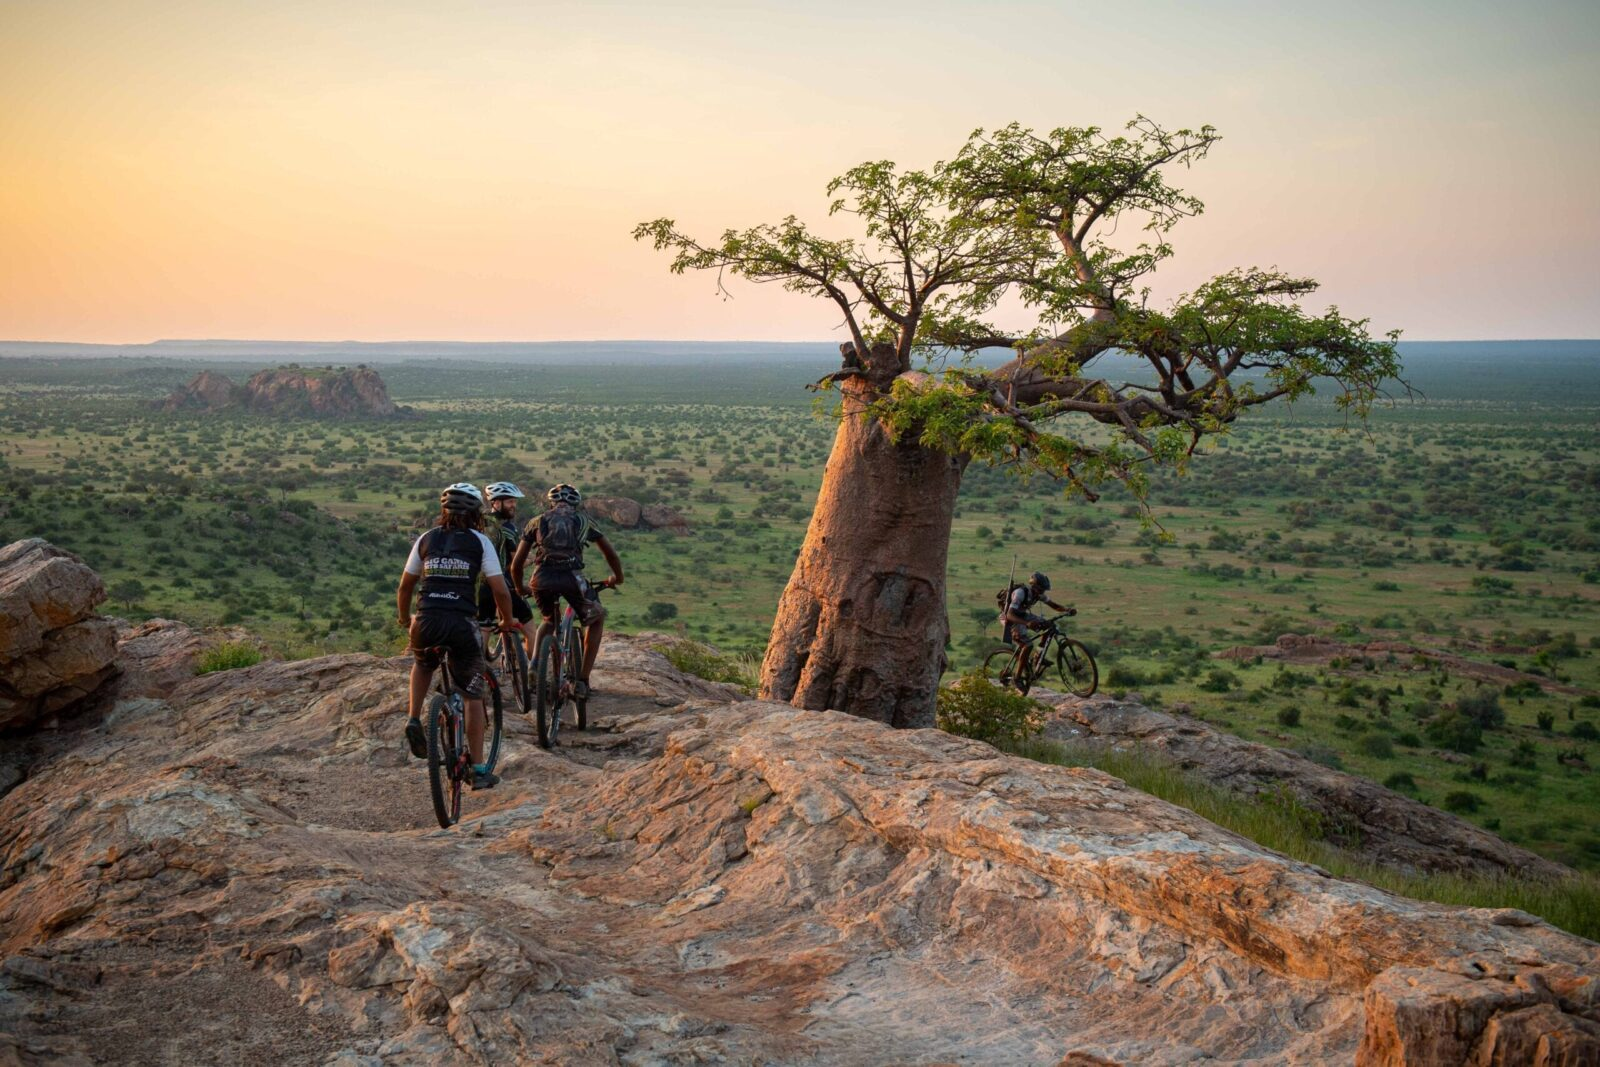 You are Crazy about Cycling in Africa